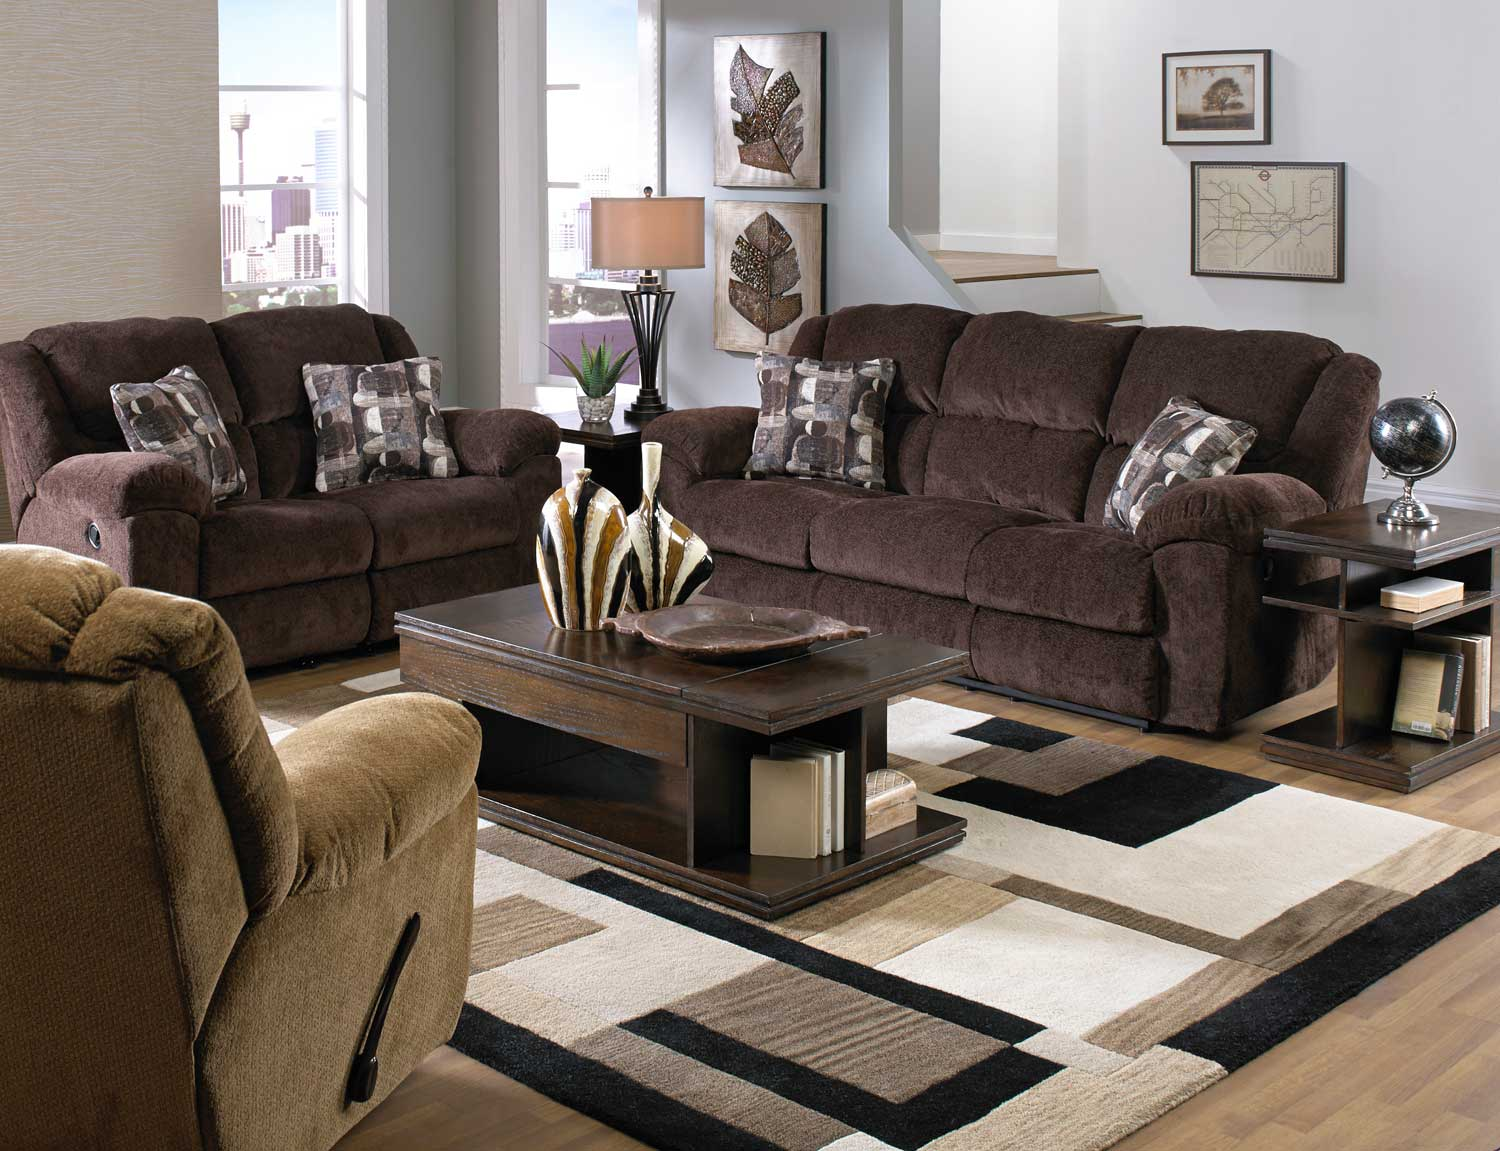 Catnapper Transformer Ultimate Sofa Set With 3 Recliners And 1 Drop Down Table Chocolate Cn 19445 Sofa Set Chocolate At Homelement Com